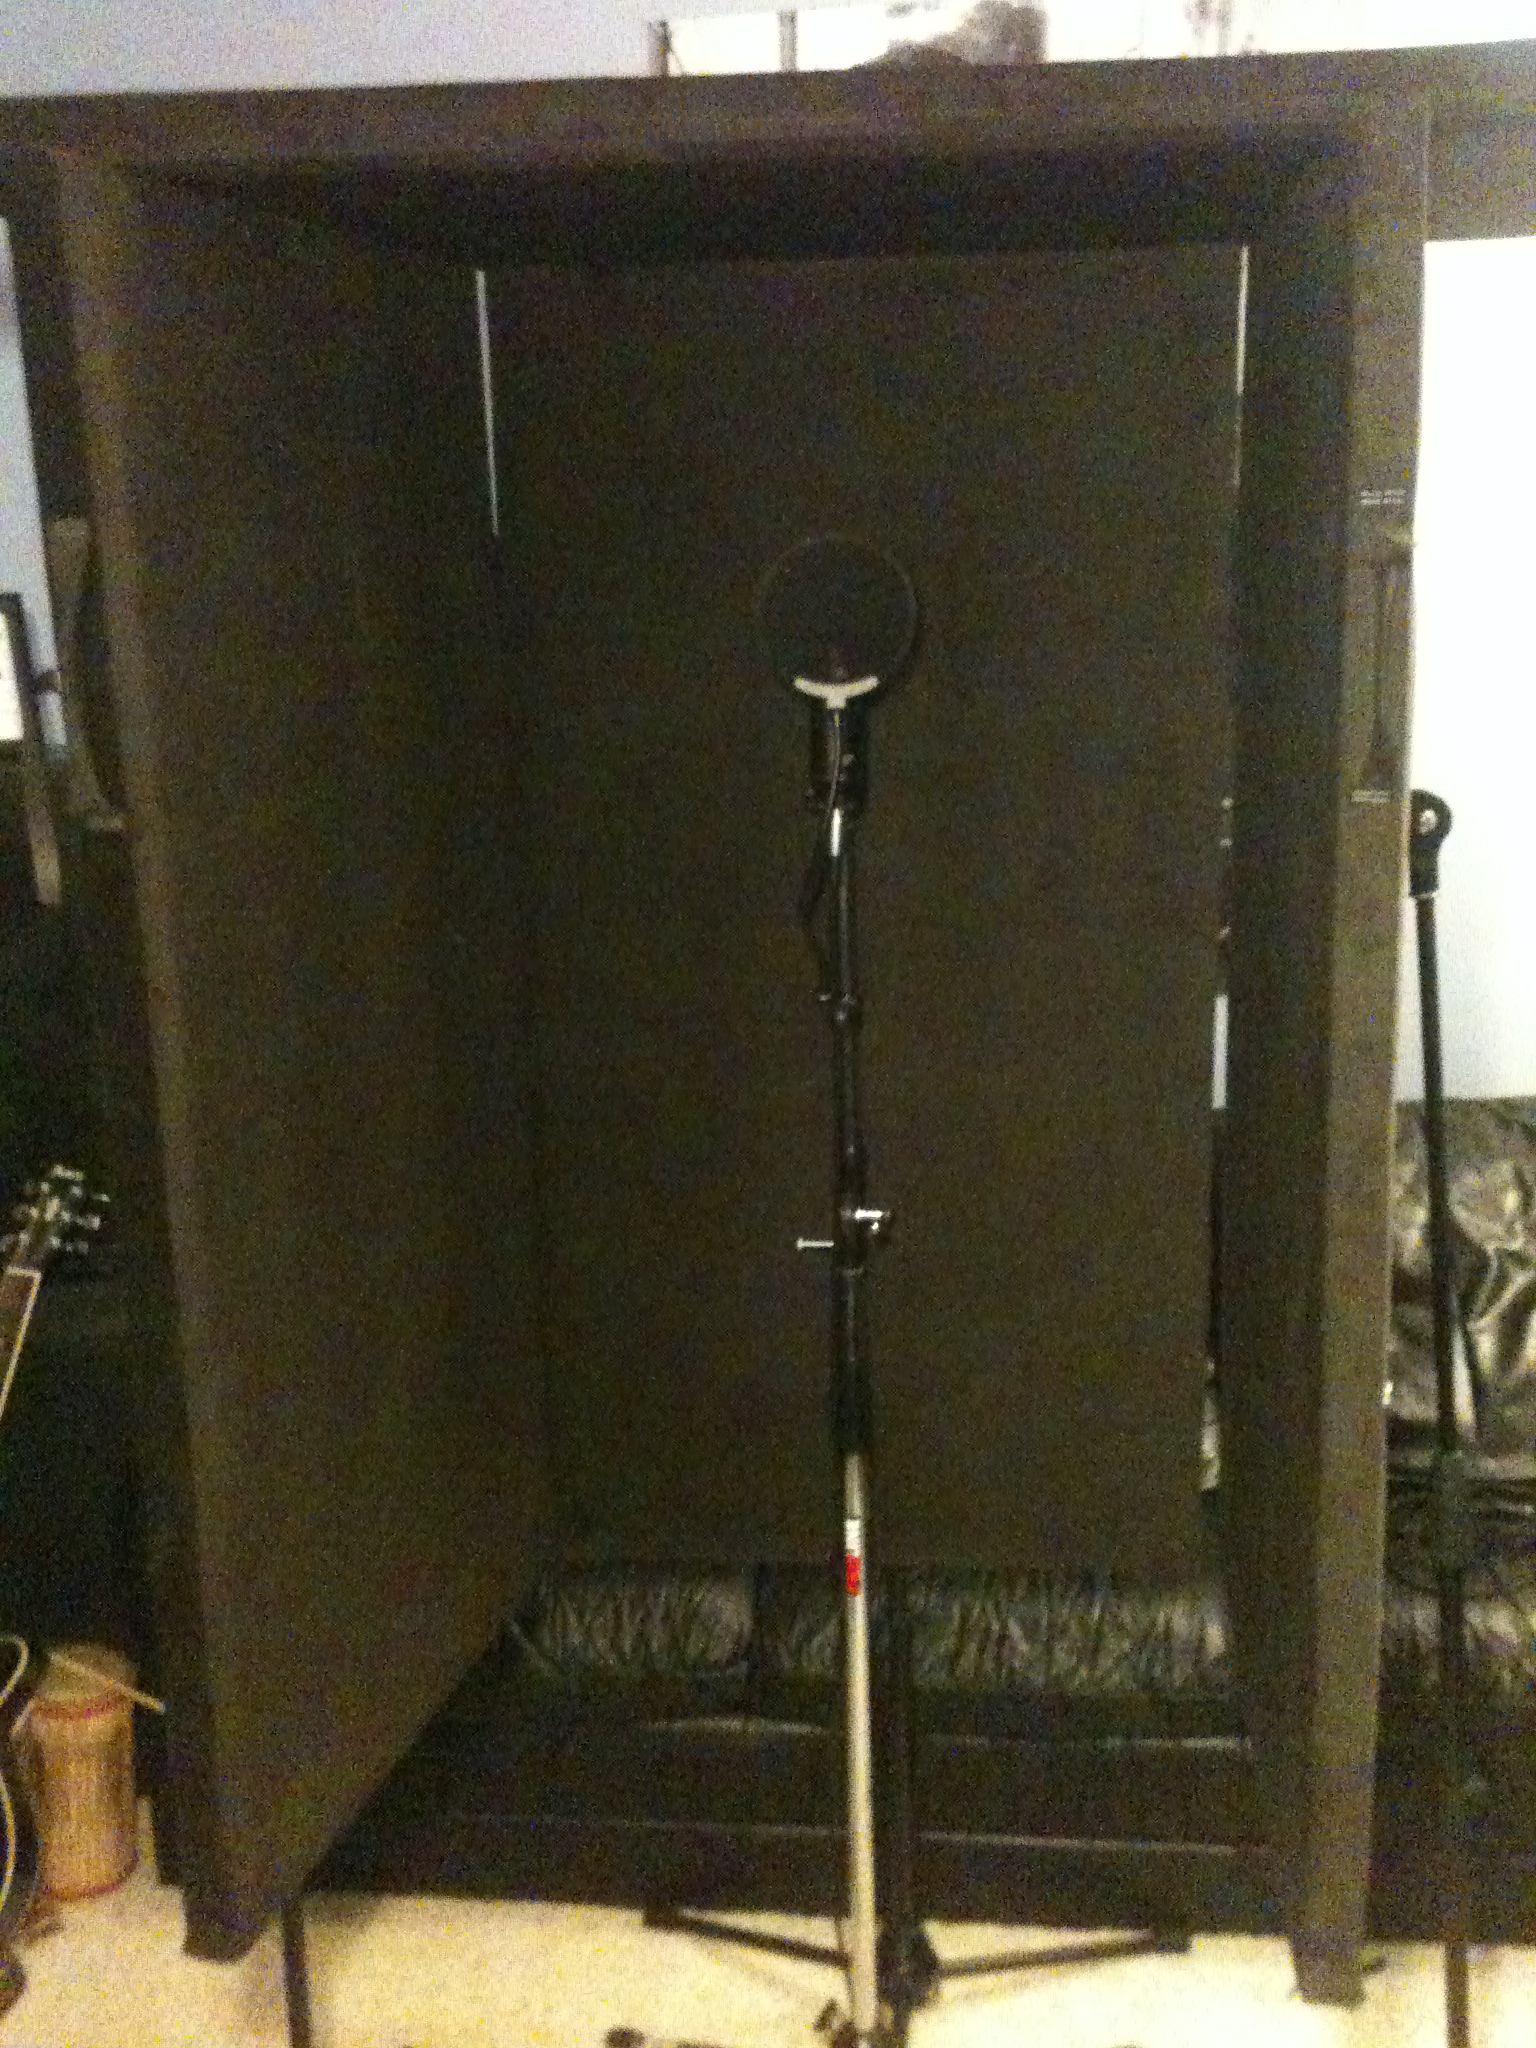 Tremendous Breathtaking Diy Vocal Booth Diy Biji Us Largest Home Design Picture Inspirations Pitcheantrous